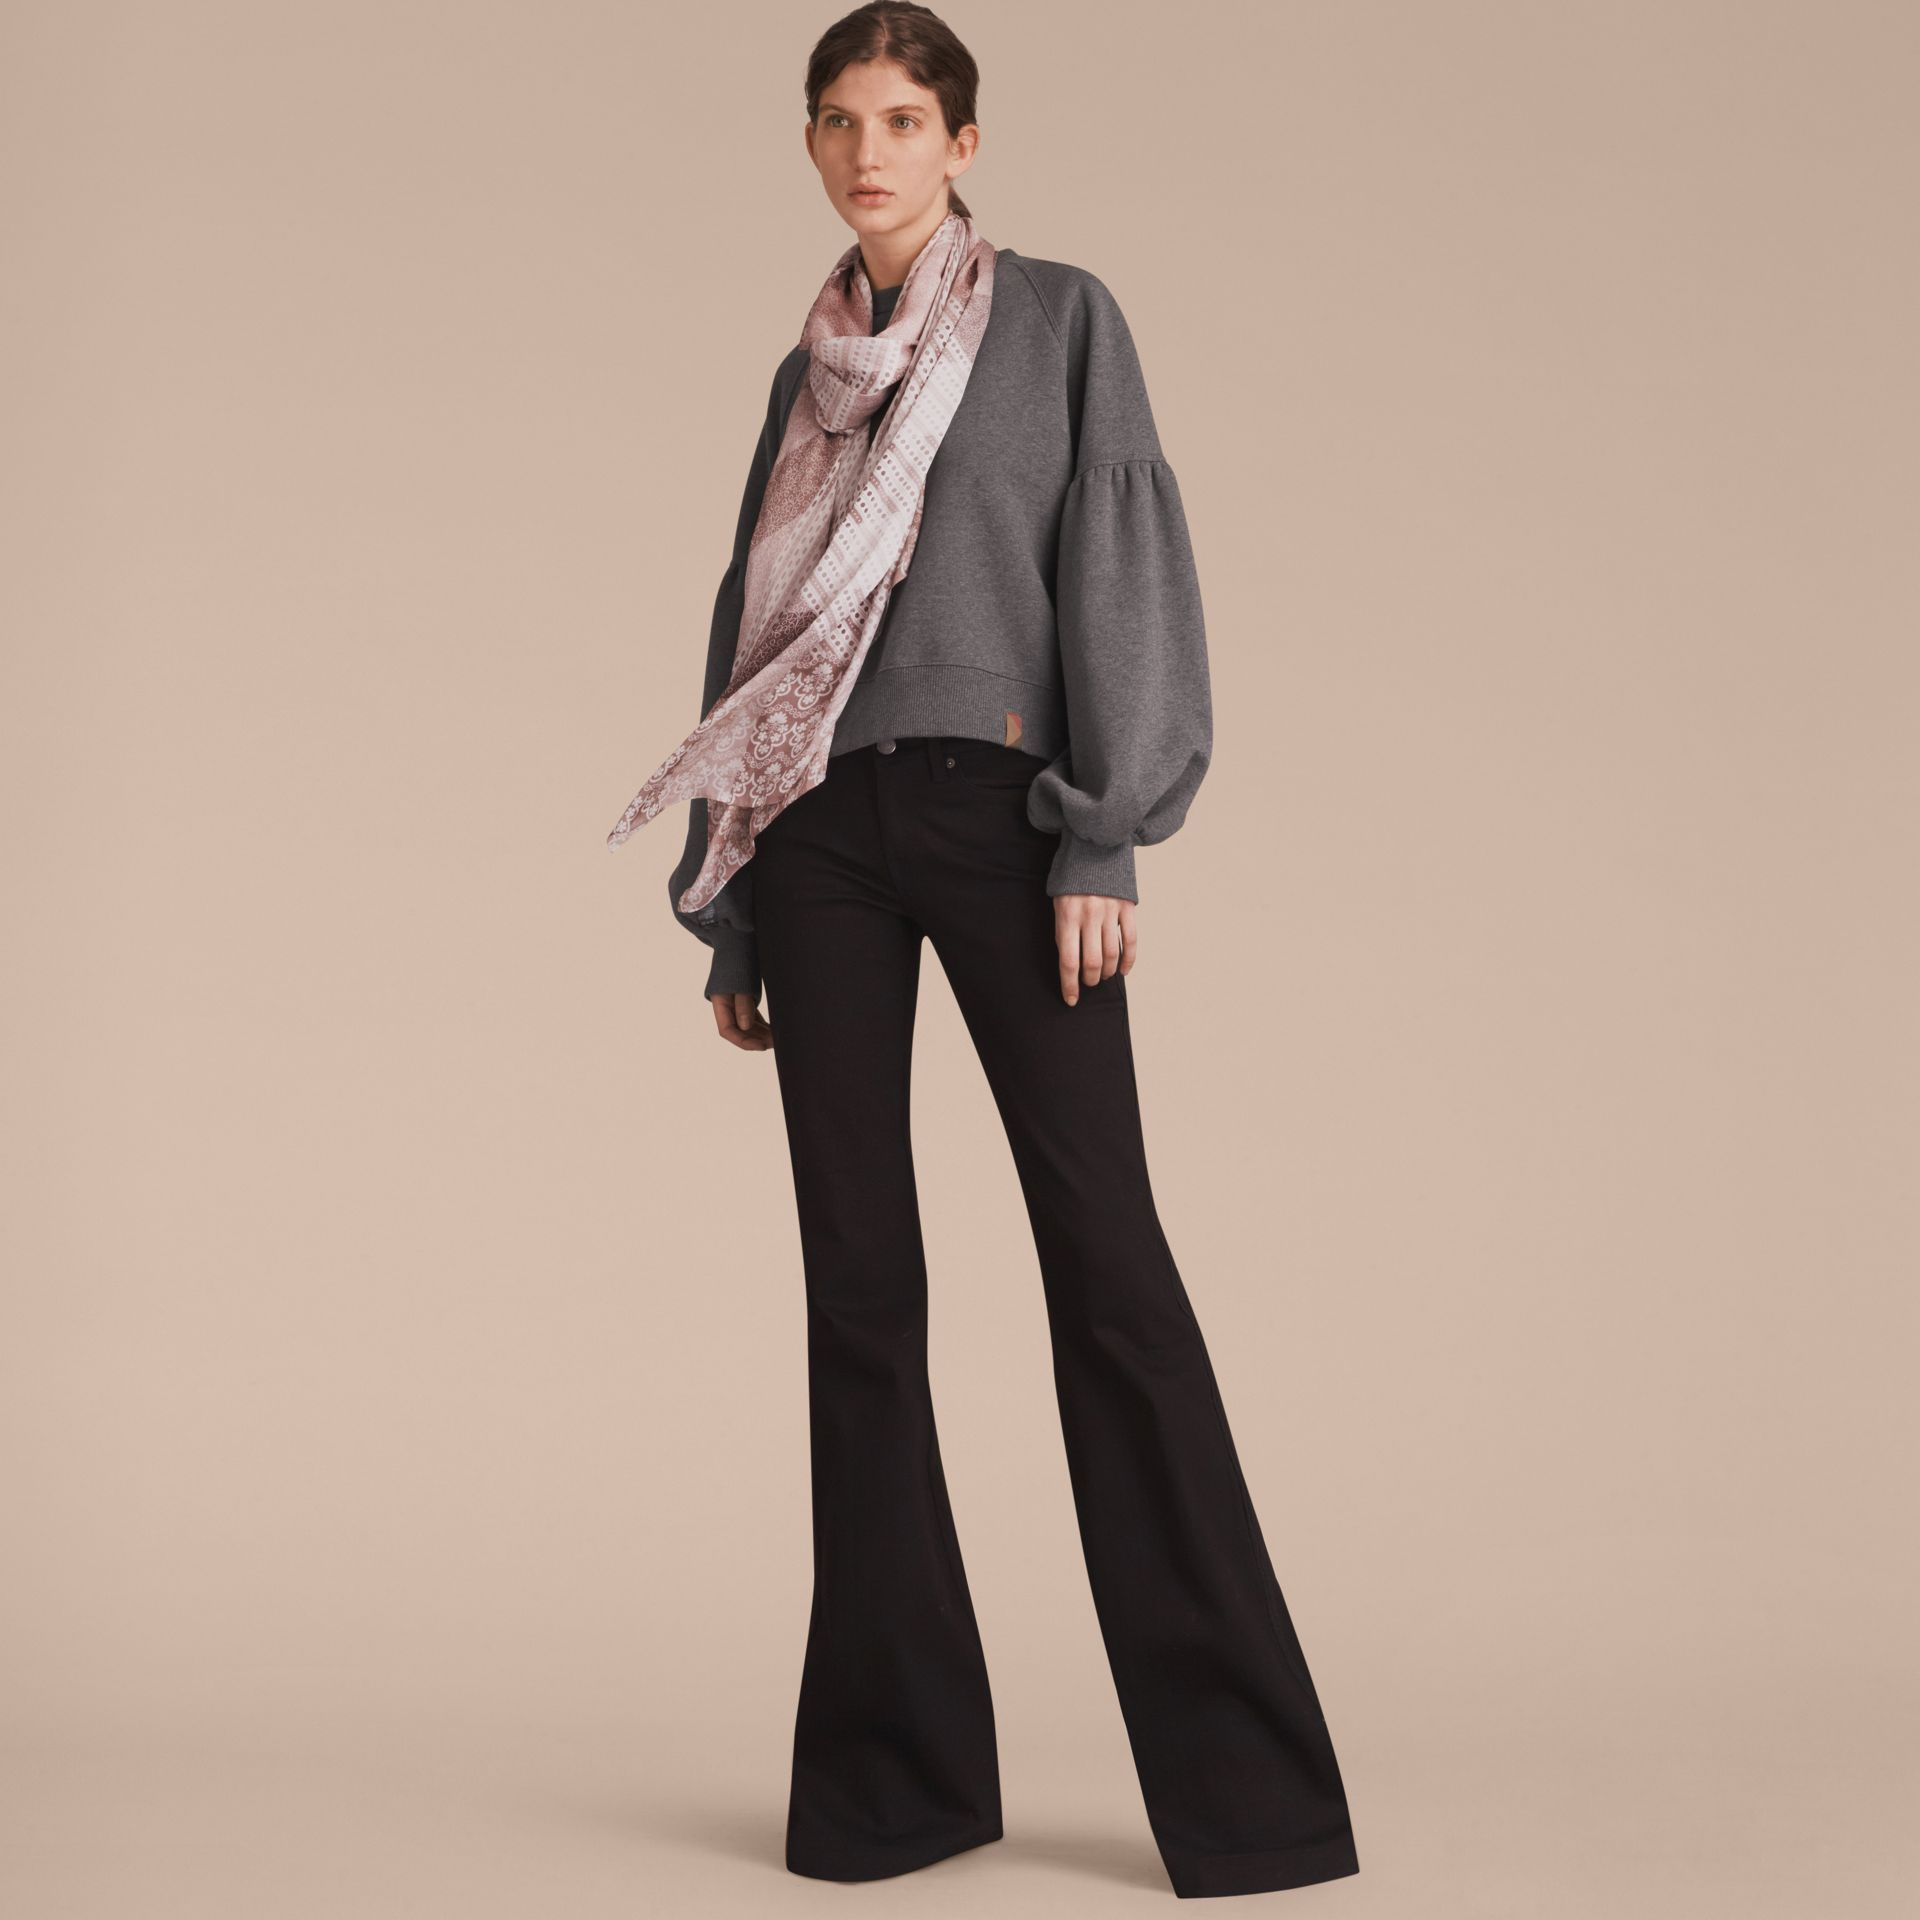 Floral Lace and Check Print Silk Scarf in Ash Rose - Women | Burberry Singapore - gallery image 3